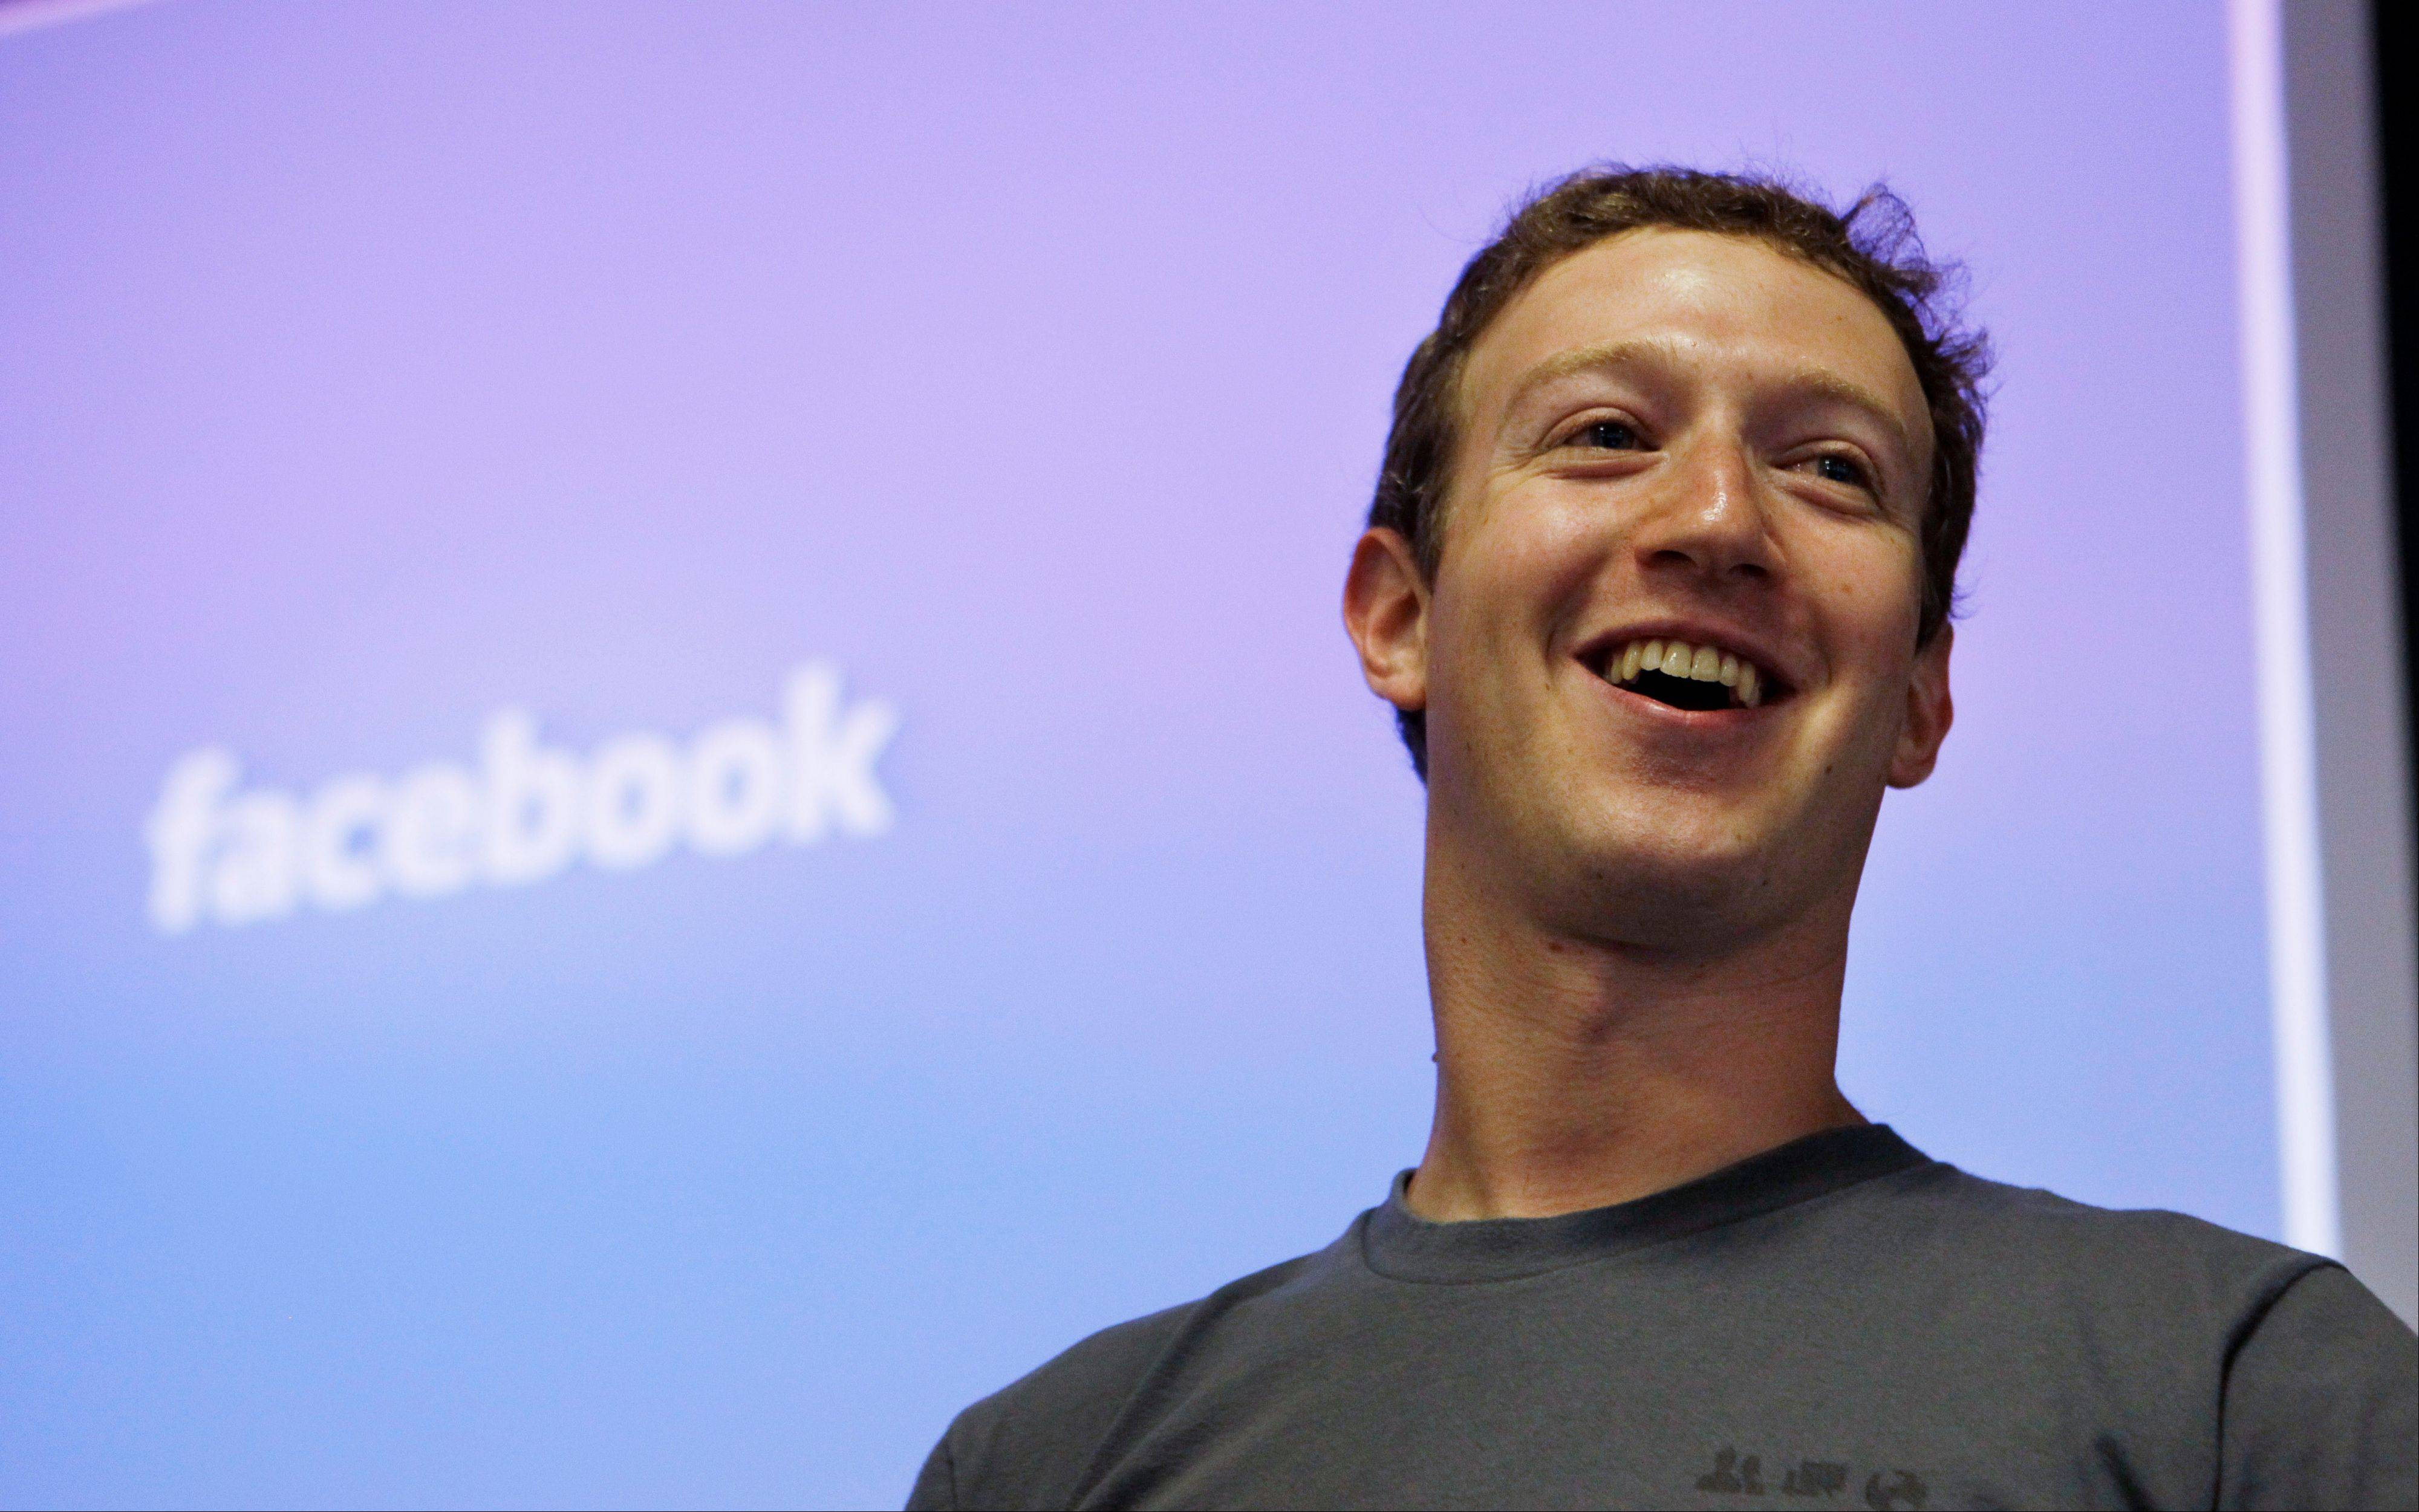 ASSOCIATED PRESSFacebook Inc. Chief Executive Officer Mark Zuckerberg, seeking to boost advertising sales from mobile devices, discussed potential partnerships with Samsung Electronics Co., according to the head of the South Korean company's handset division.